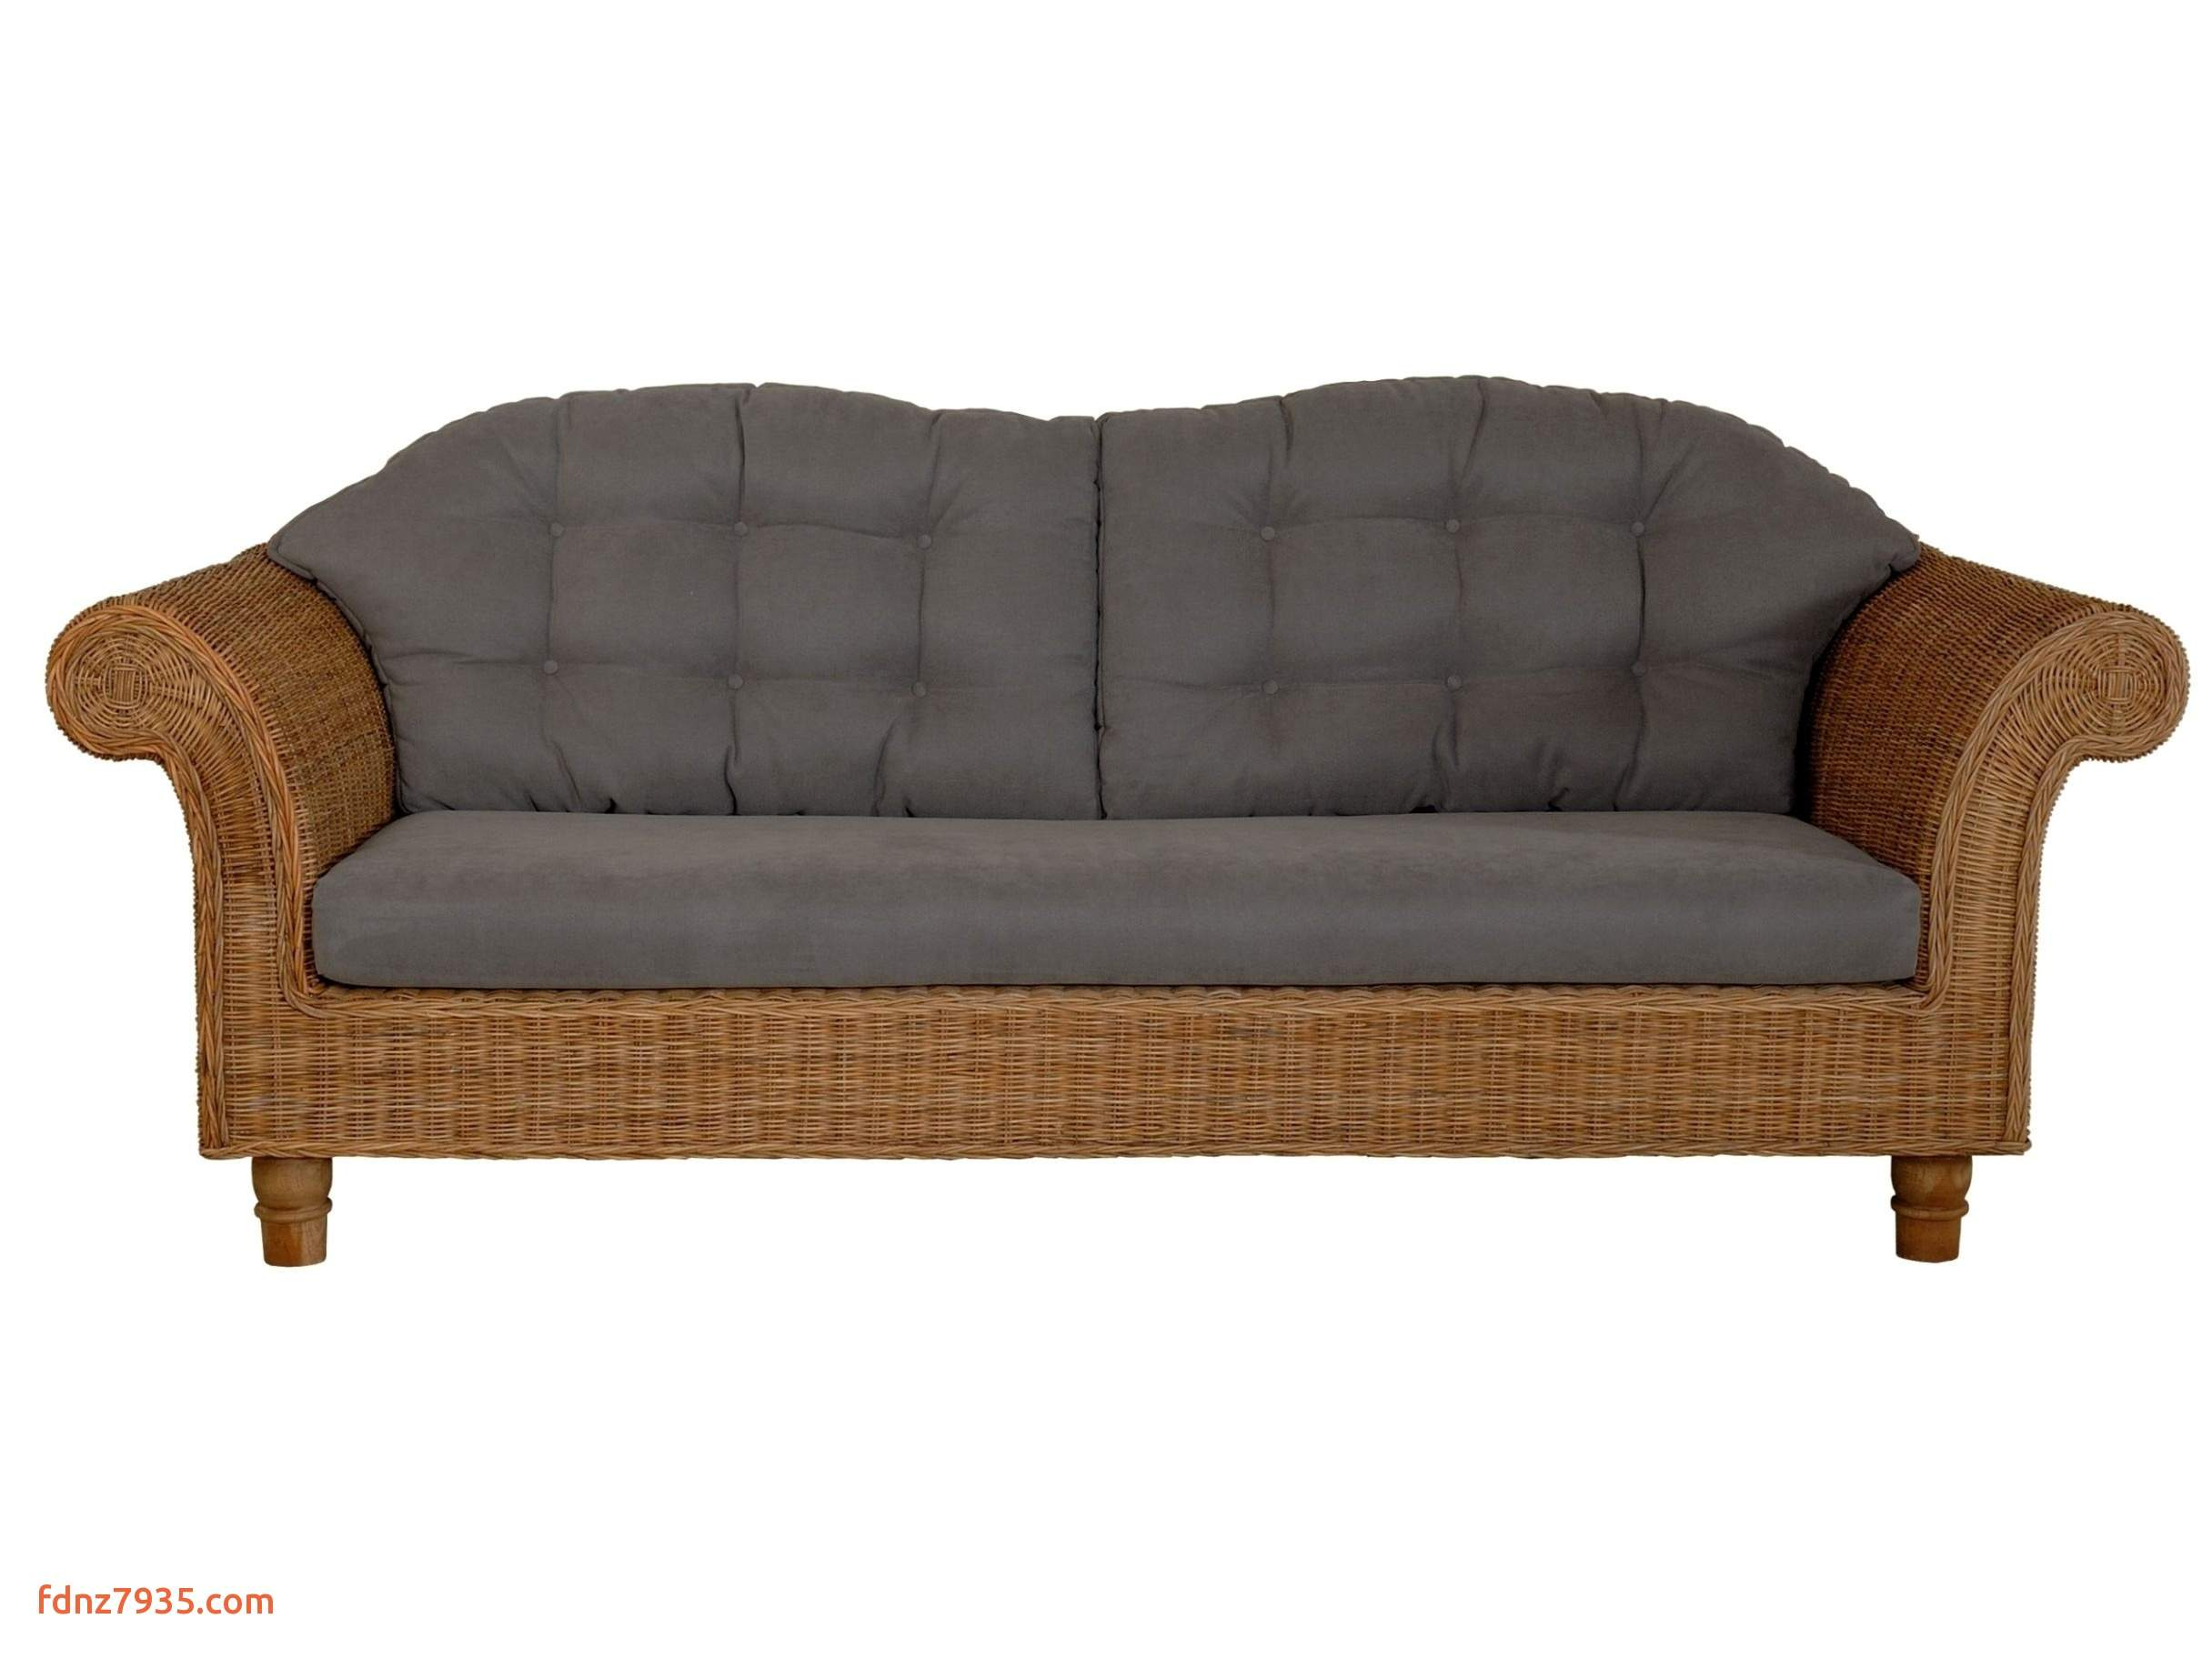 pull out sofa awesome fold out sofa designsolutions usa designsolutions of pull out sofa